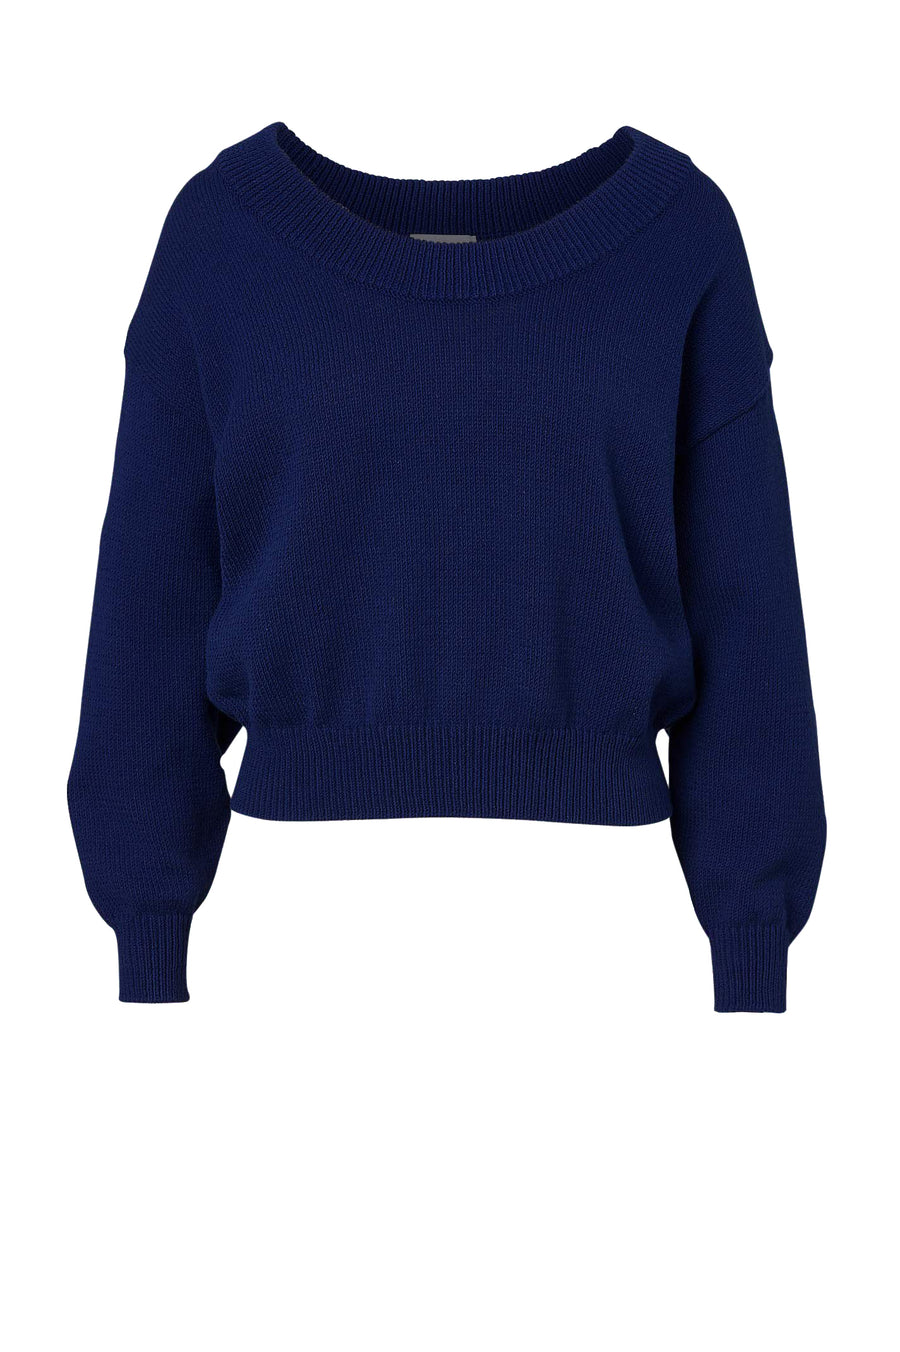 Cotton Sparkle Sweater embodies understated comfort and style